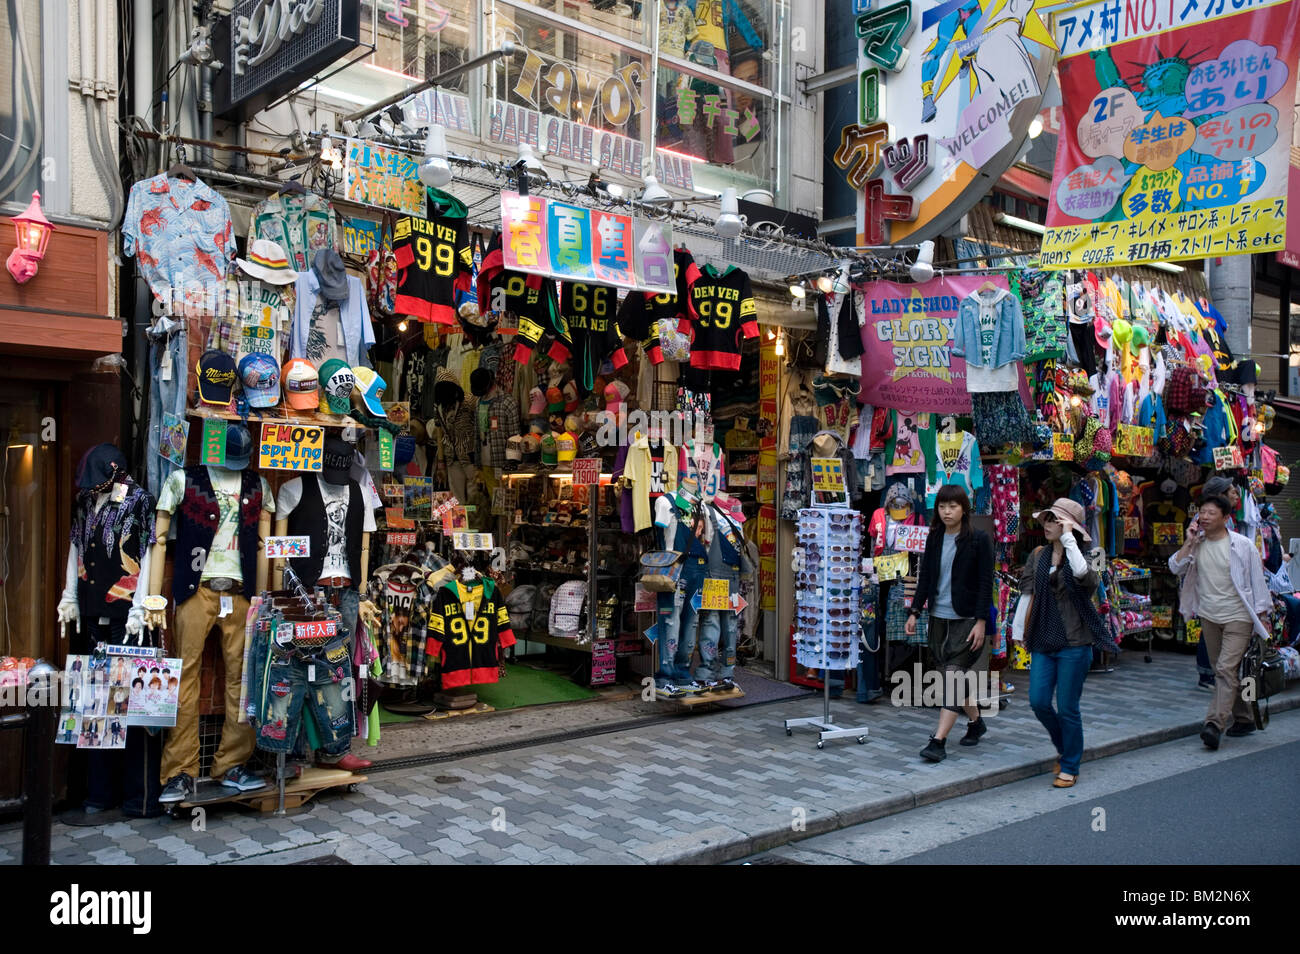 Colourful shop in Ame-mura, American Village, center of youth culture in Osaka, Japan - Stock Image